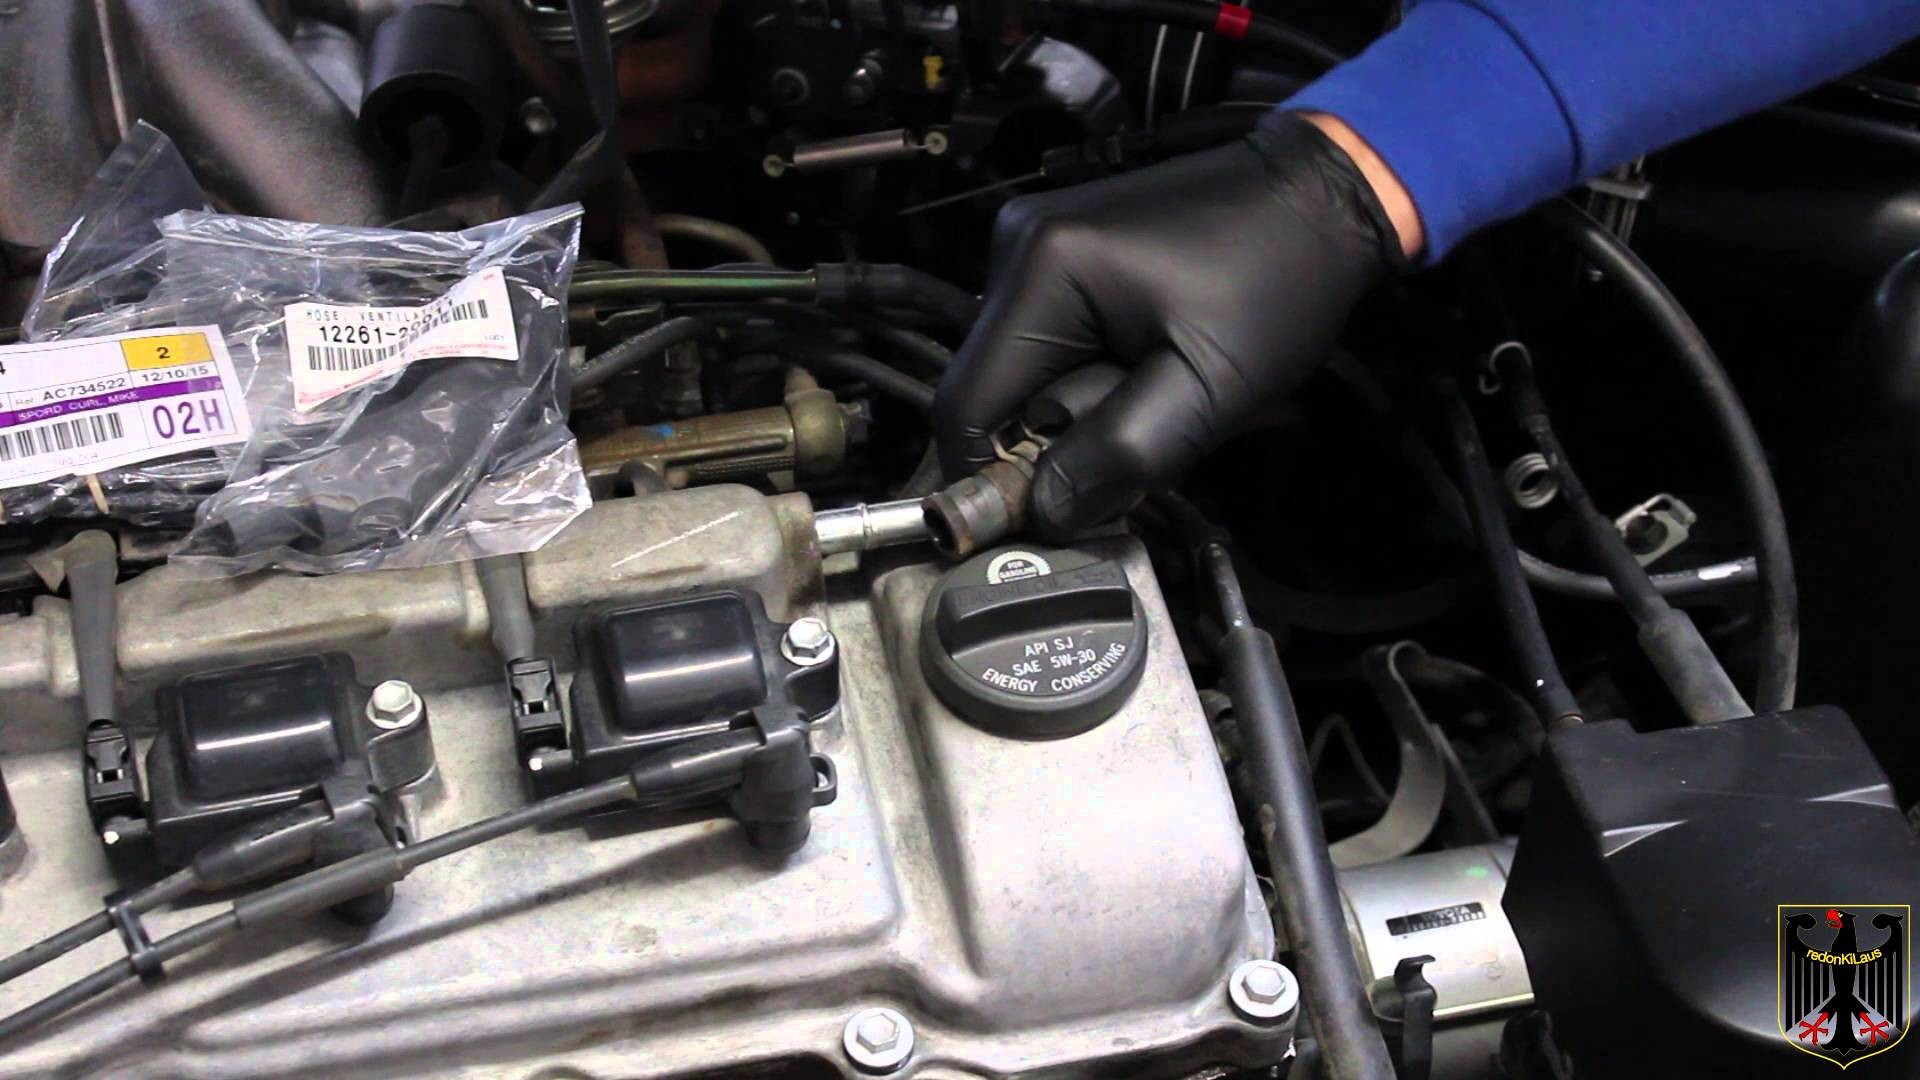 2001 toyota Camry 4 Cylinder Engine Diagram 2001 toyota Camry Vacuum Line  Replacement